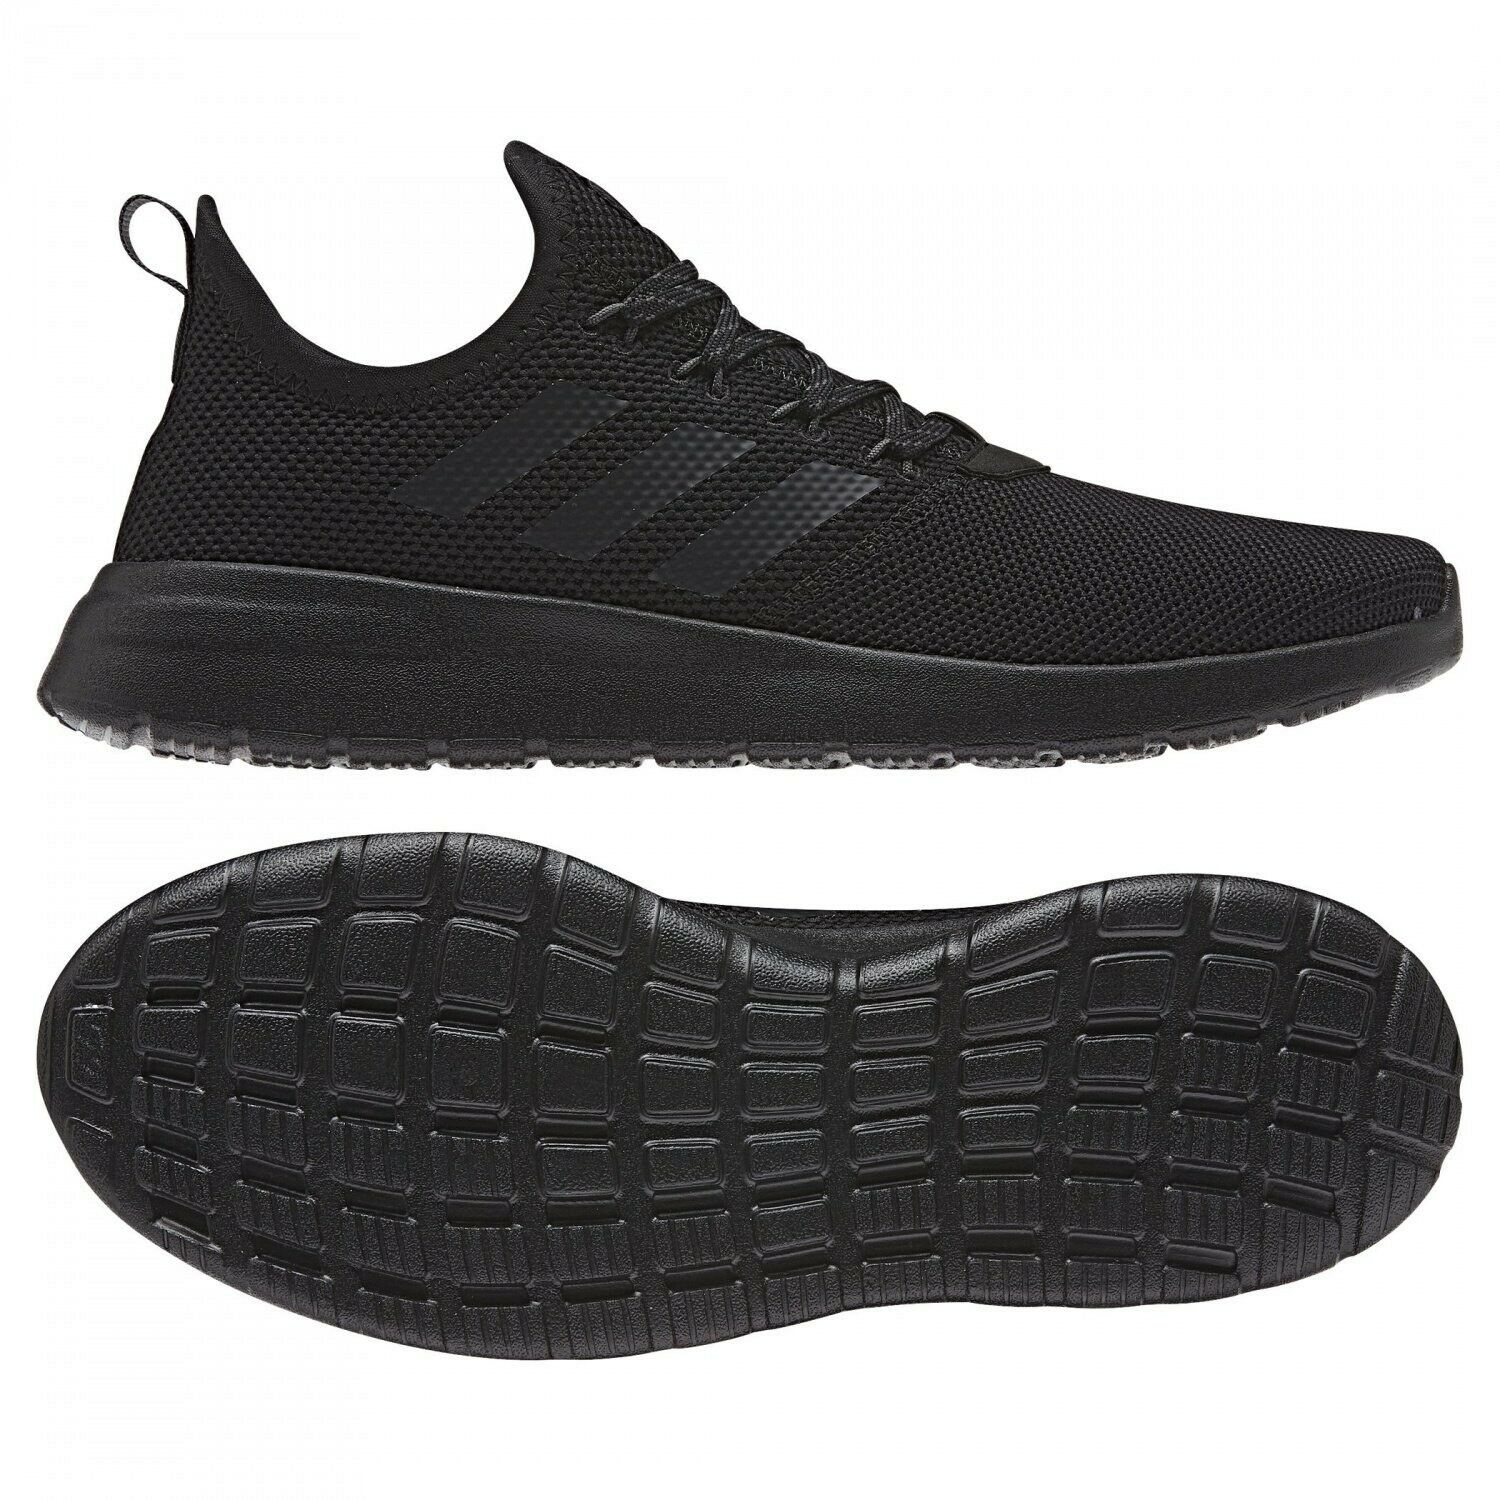 Adidas LITE RACER RBN Men's Running shoes Athletic Sneakers F36642